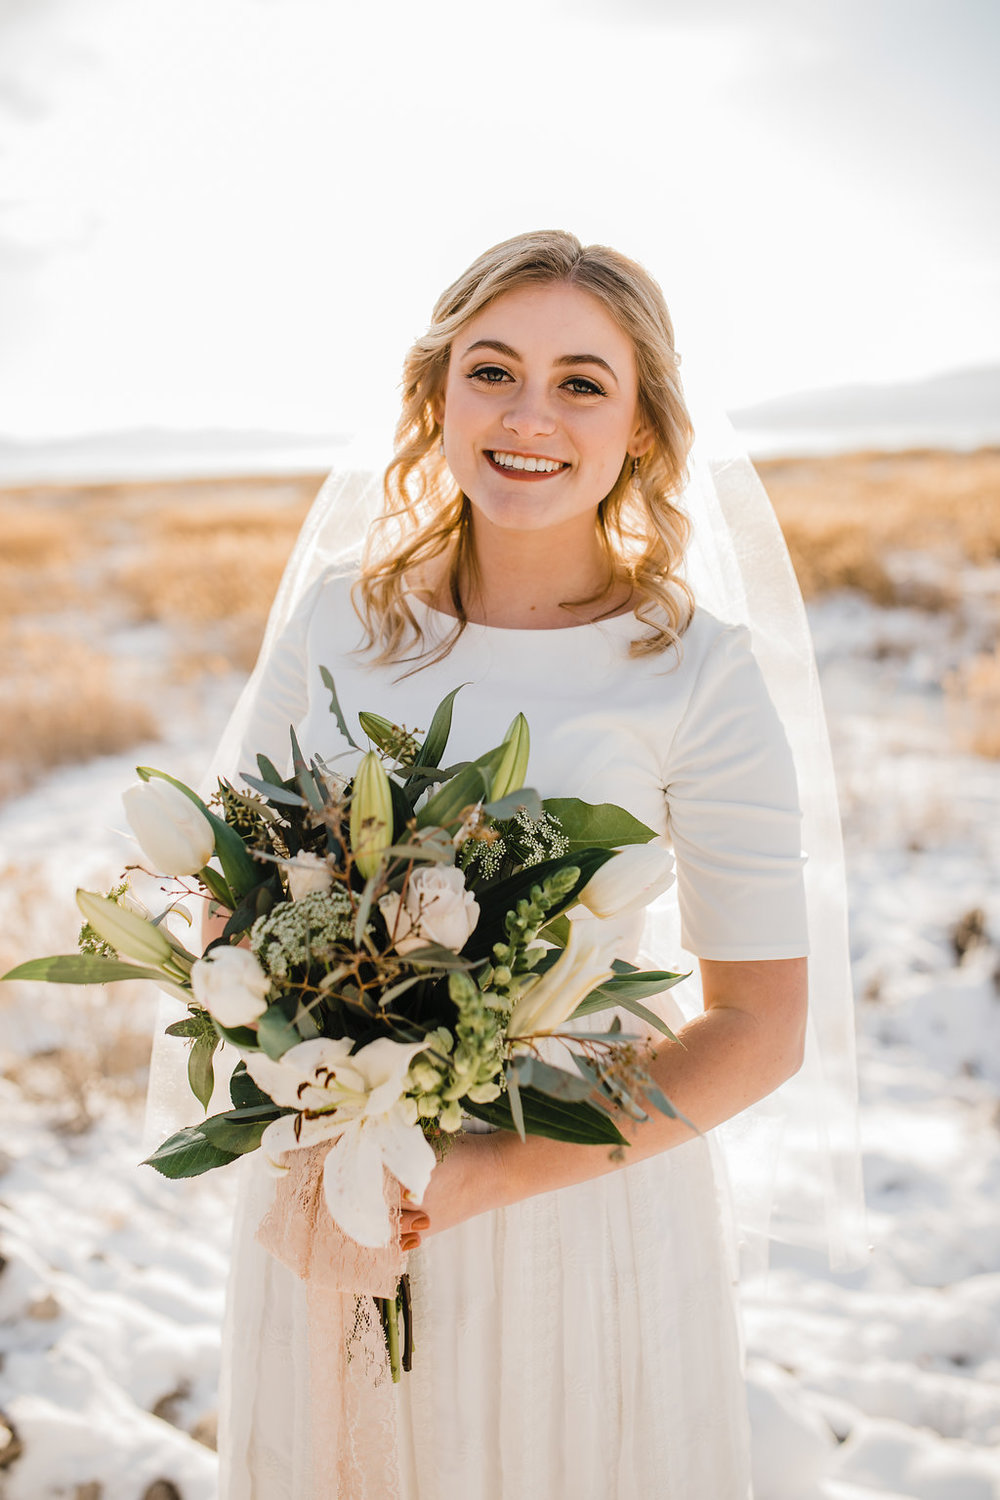 bridals wedding photographer logan utah veil back light bright